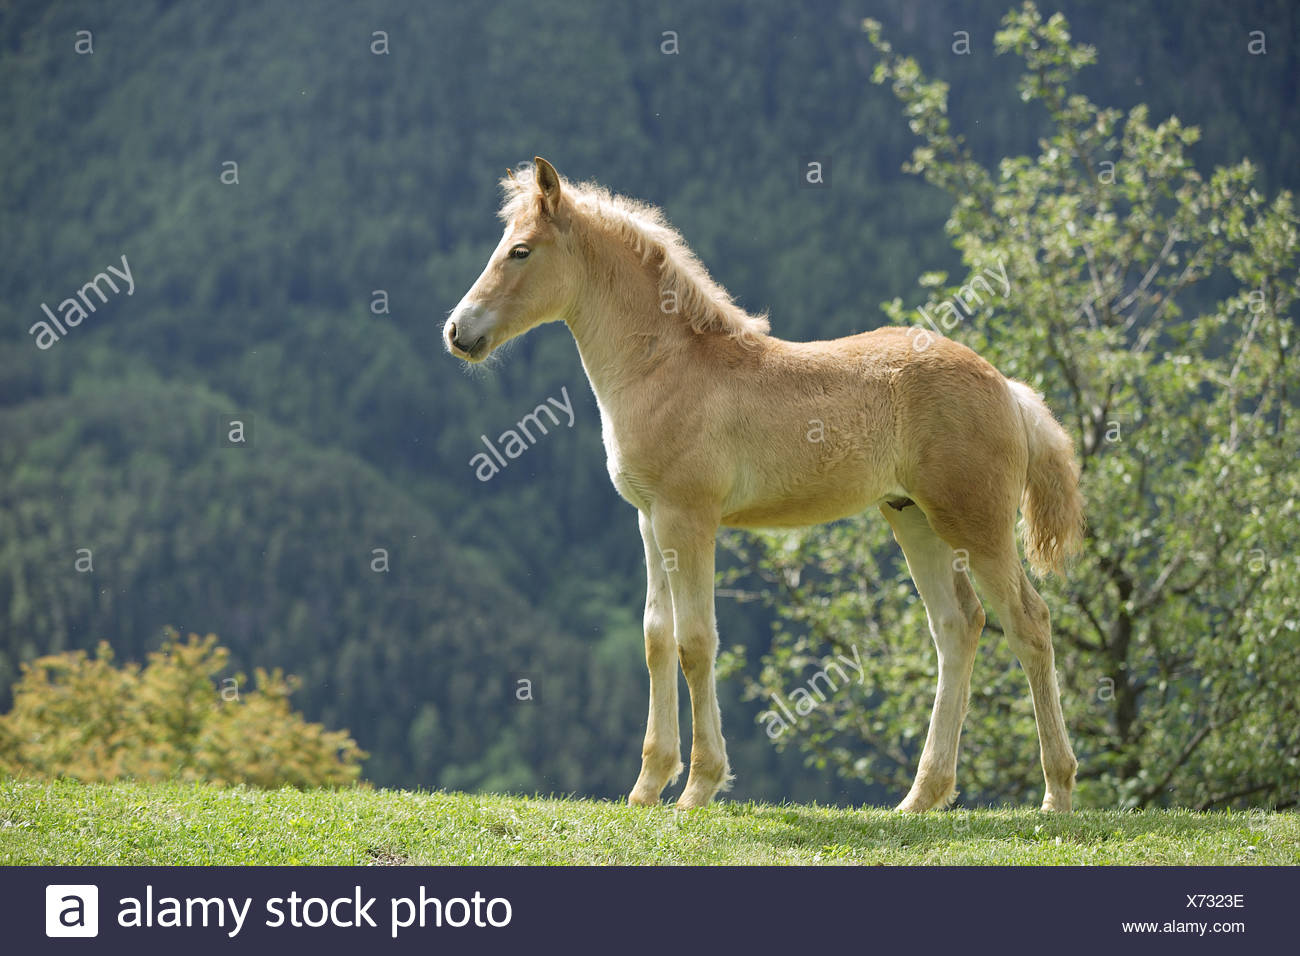 haflinger foal - standing on meadow - Stock Image